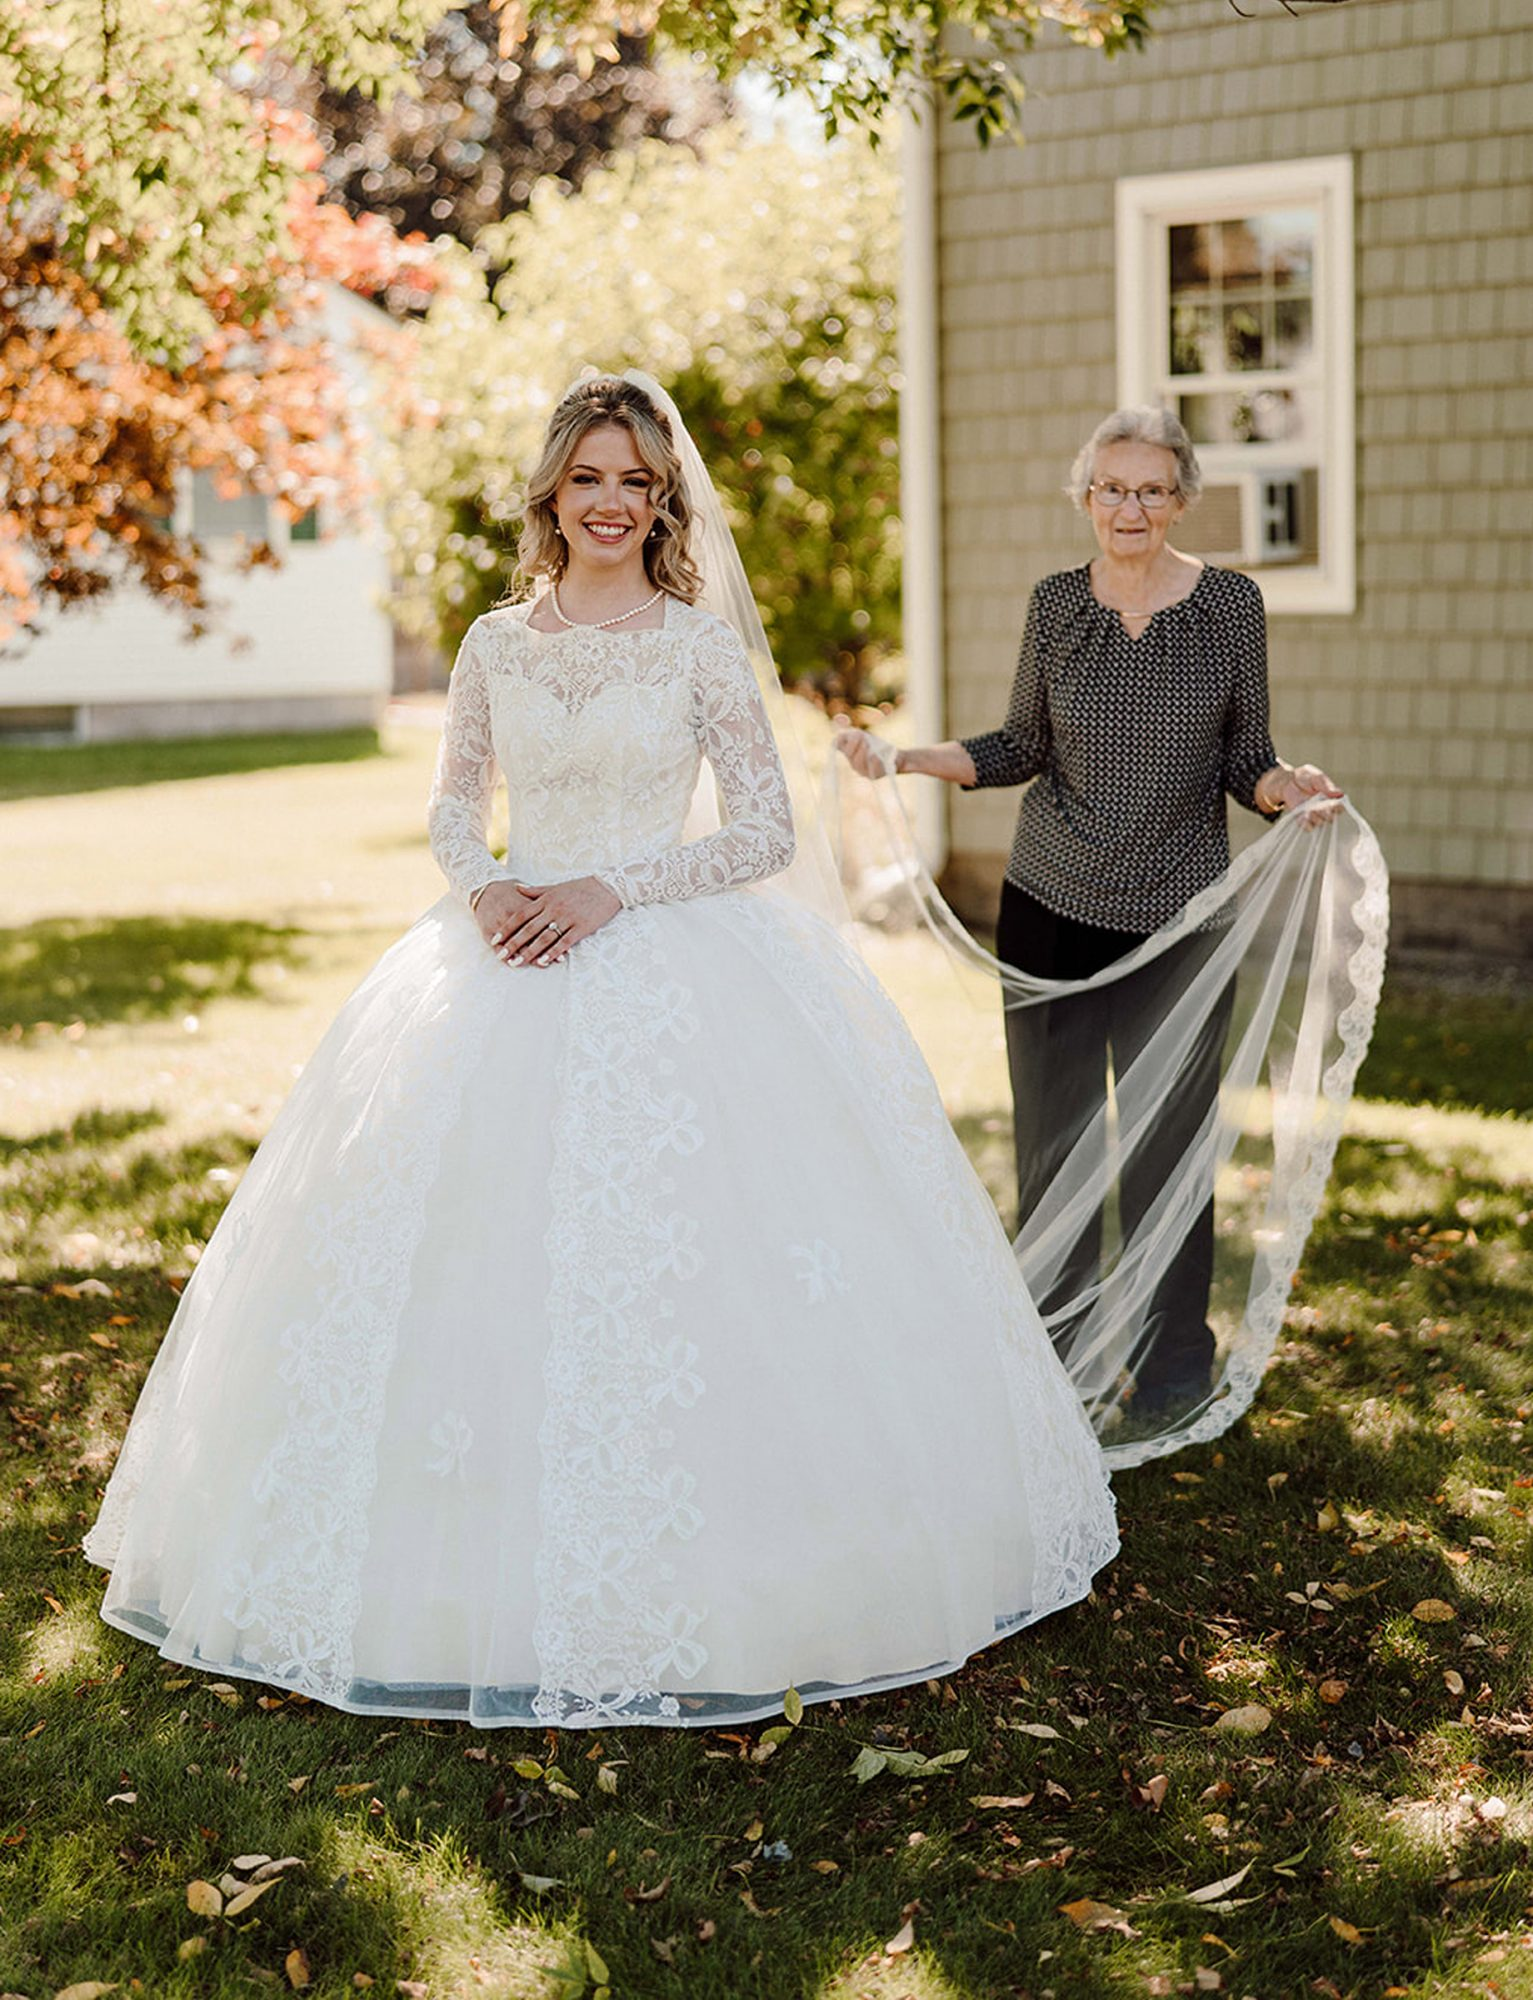 @keptyaphotography / MERCURY PRESS (PICTURED L-R Allie Livingwater and grandmother Anne Cooke) This woman has something borrowed and something old as she walked down the aisle wearing her grandma's 60-year-old wedding dress. Allie Livingwater, 23, tied the knot with Timothy, 27, on September 25 [2021] wearing her grandma Anne Cooke, 88, dress. The white laced gown was discovered in a black bin liner in 2016 and Allie immediately knew she wanted to wear it as 'something borrowed'. The long-sleeved dress required zero alterations but needed a clean after being stored in the basement since 1961. SEE MERCURY COPY